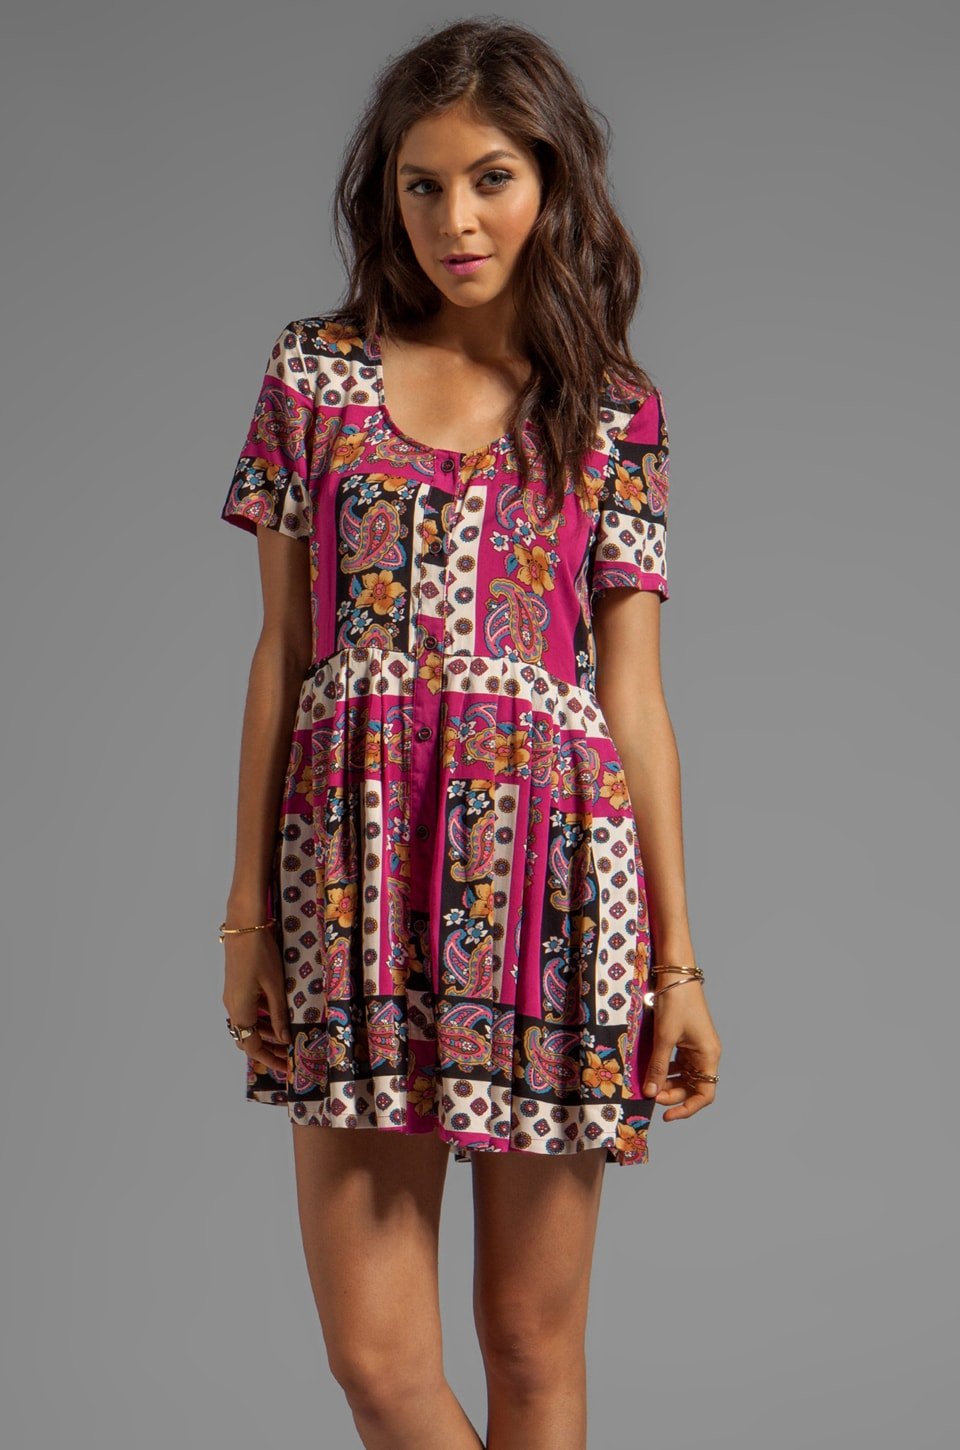 MINKPINK Princess of Persia Dress in Multi